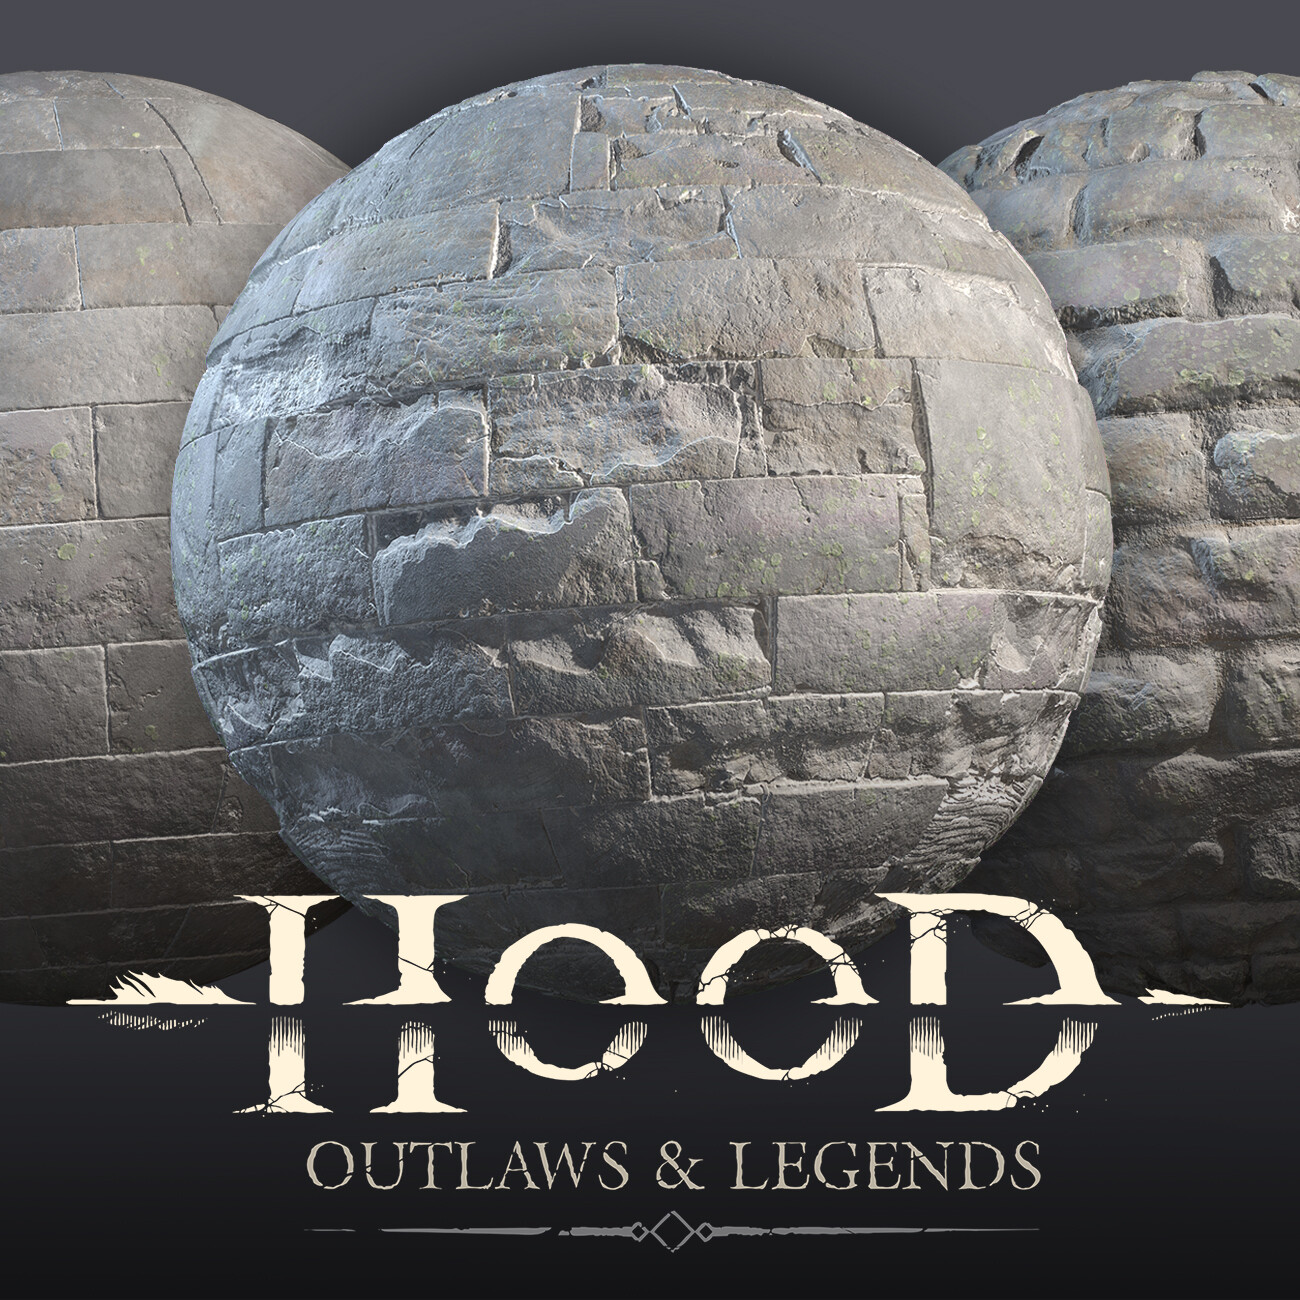 Hood: Outlaws & Legends - Castle Stone Materials